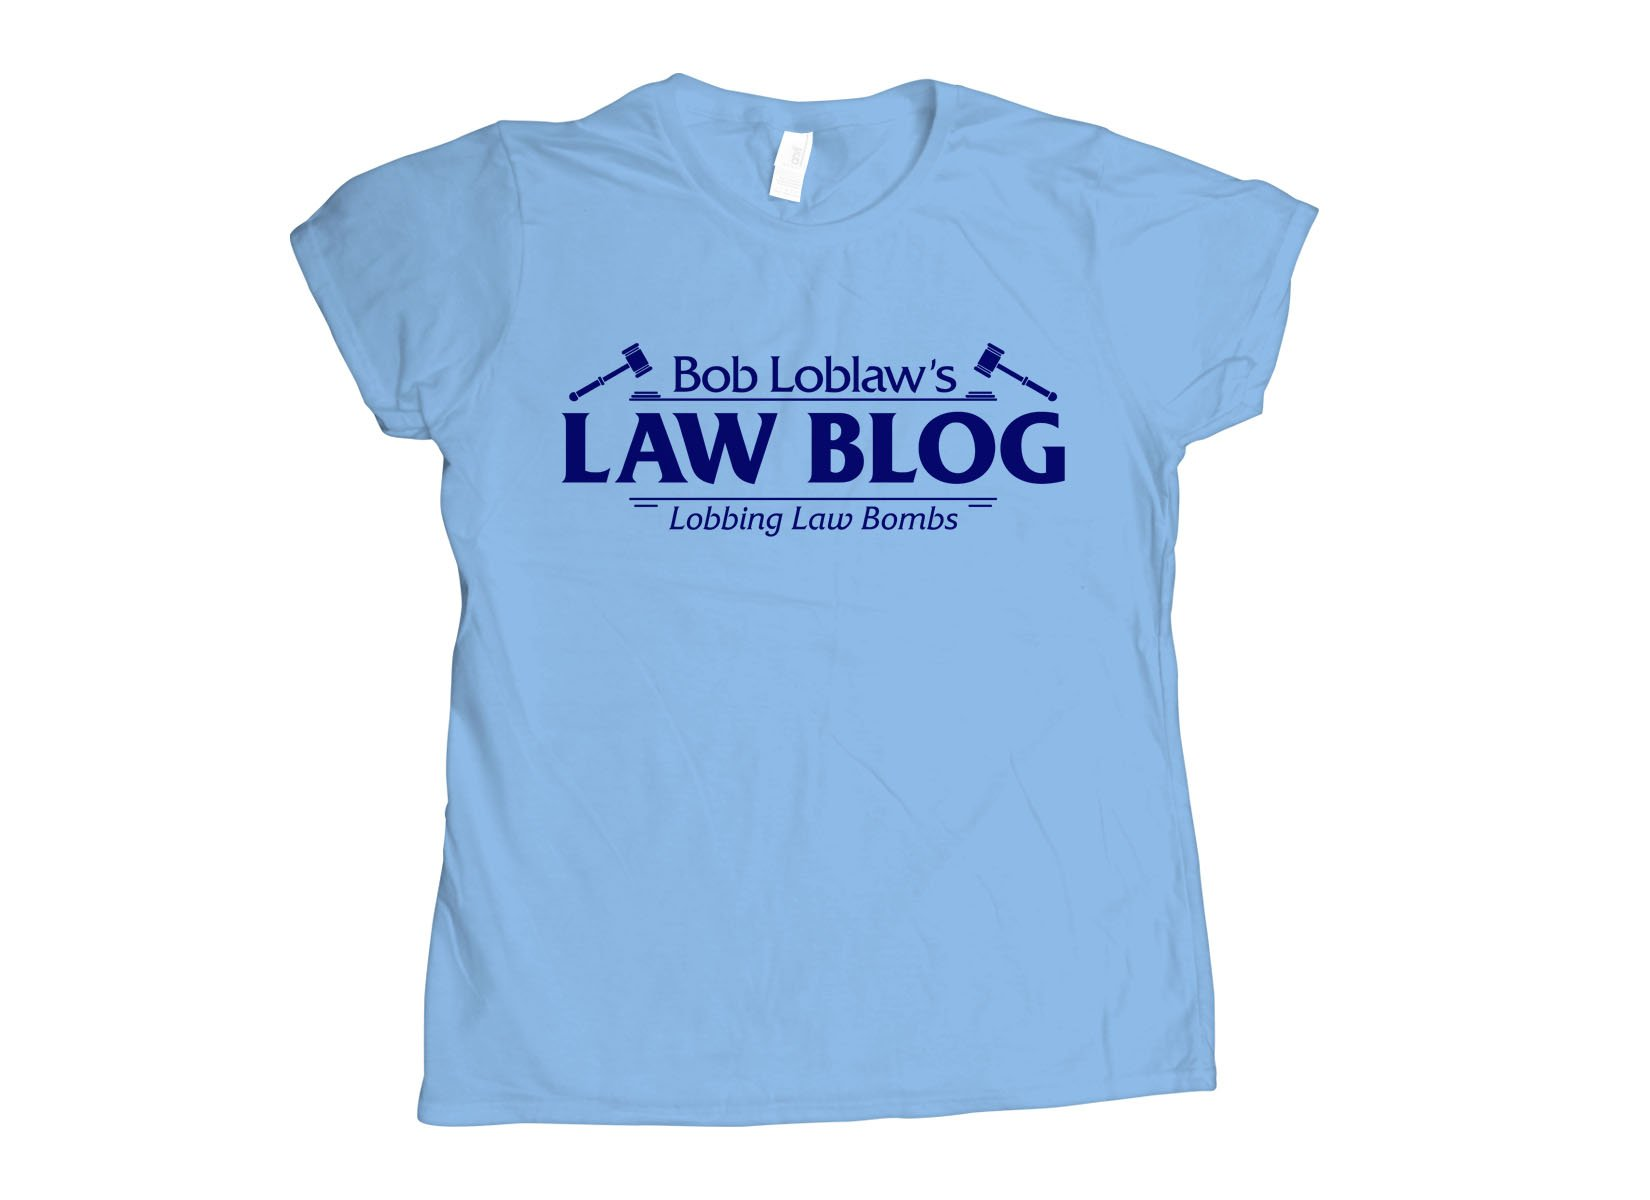 Bob Loblaw's Law Blog on Womens T-Shirt